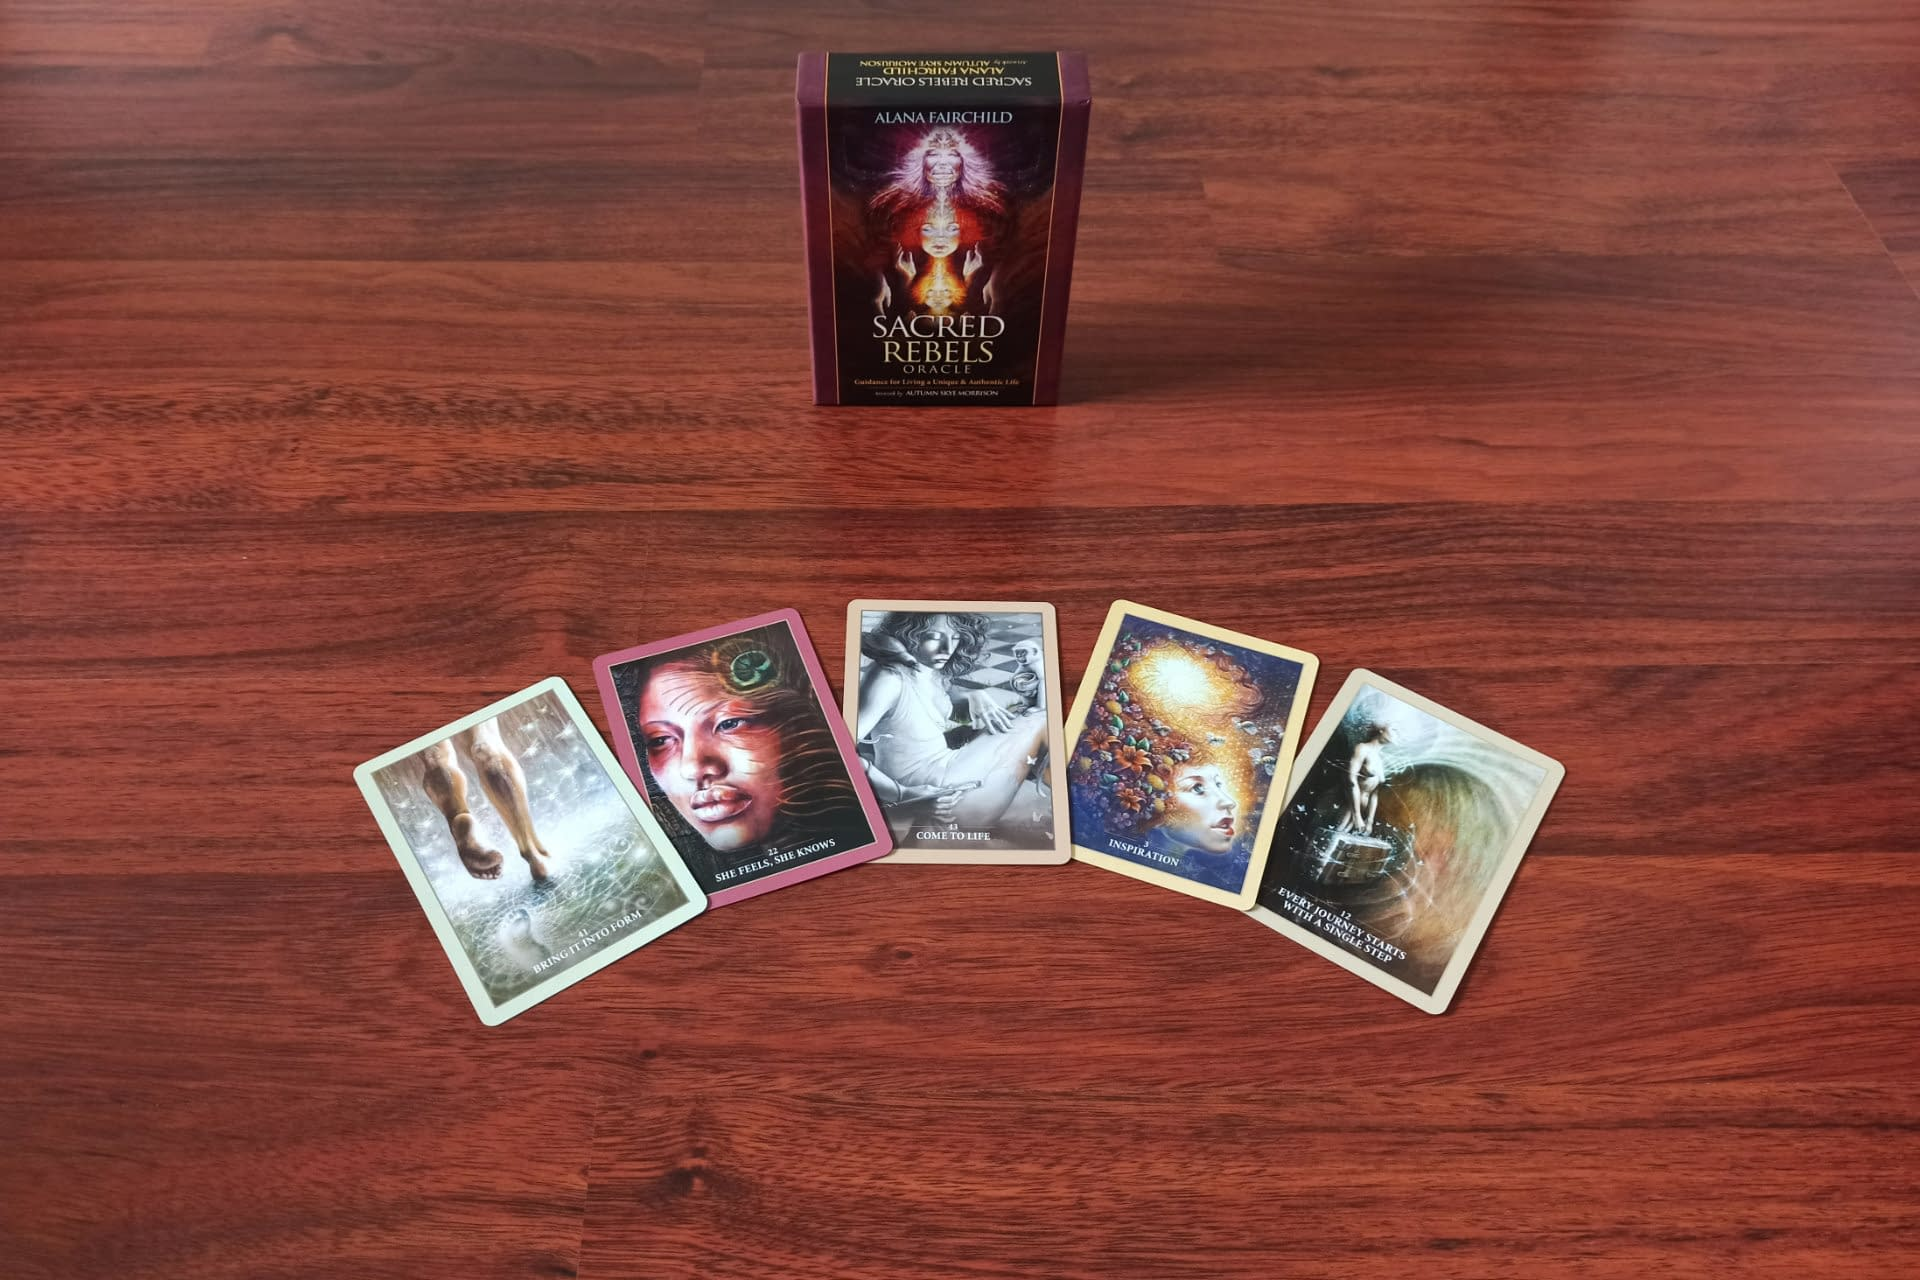 Oracle Cards: Sacred Rebels - Example cards on the floor